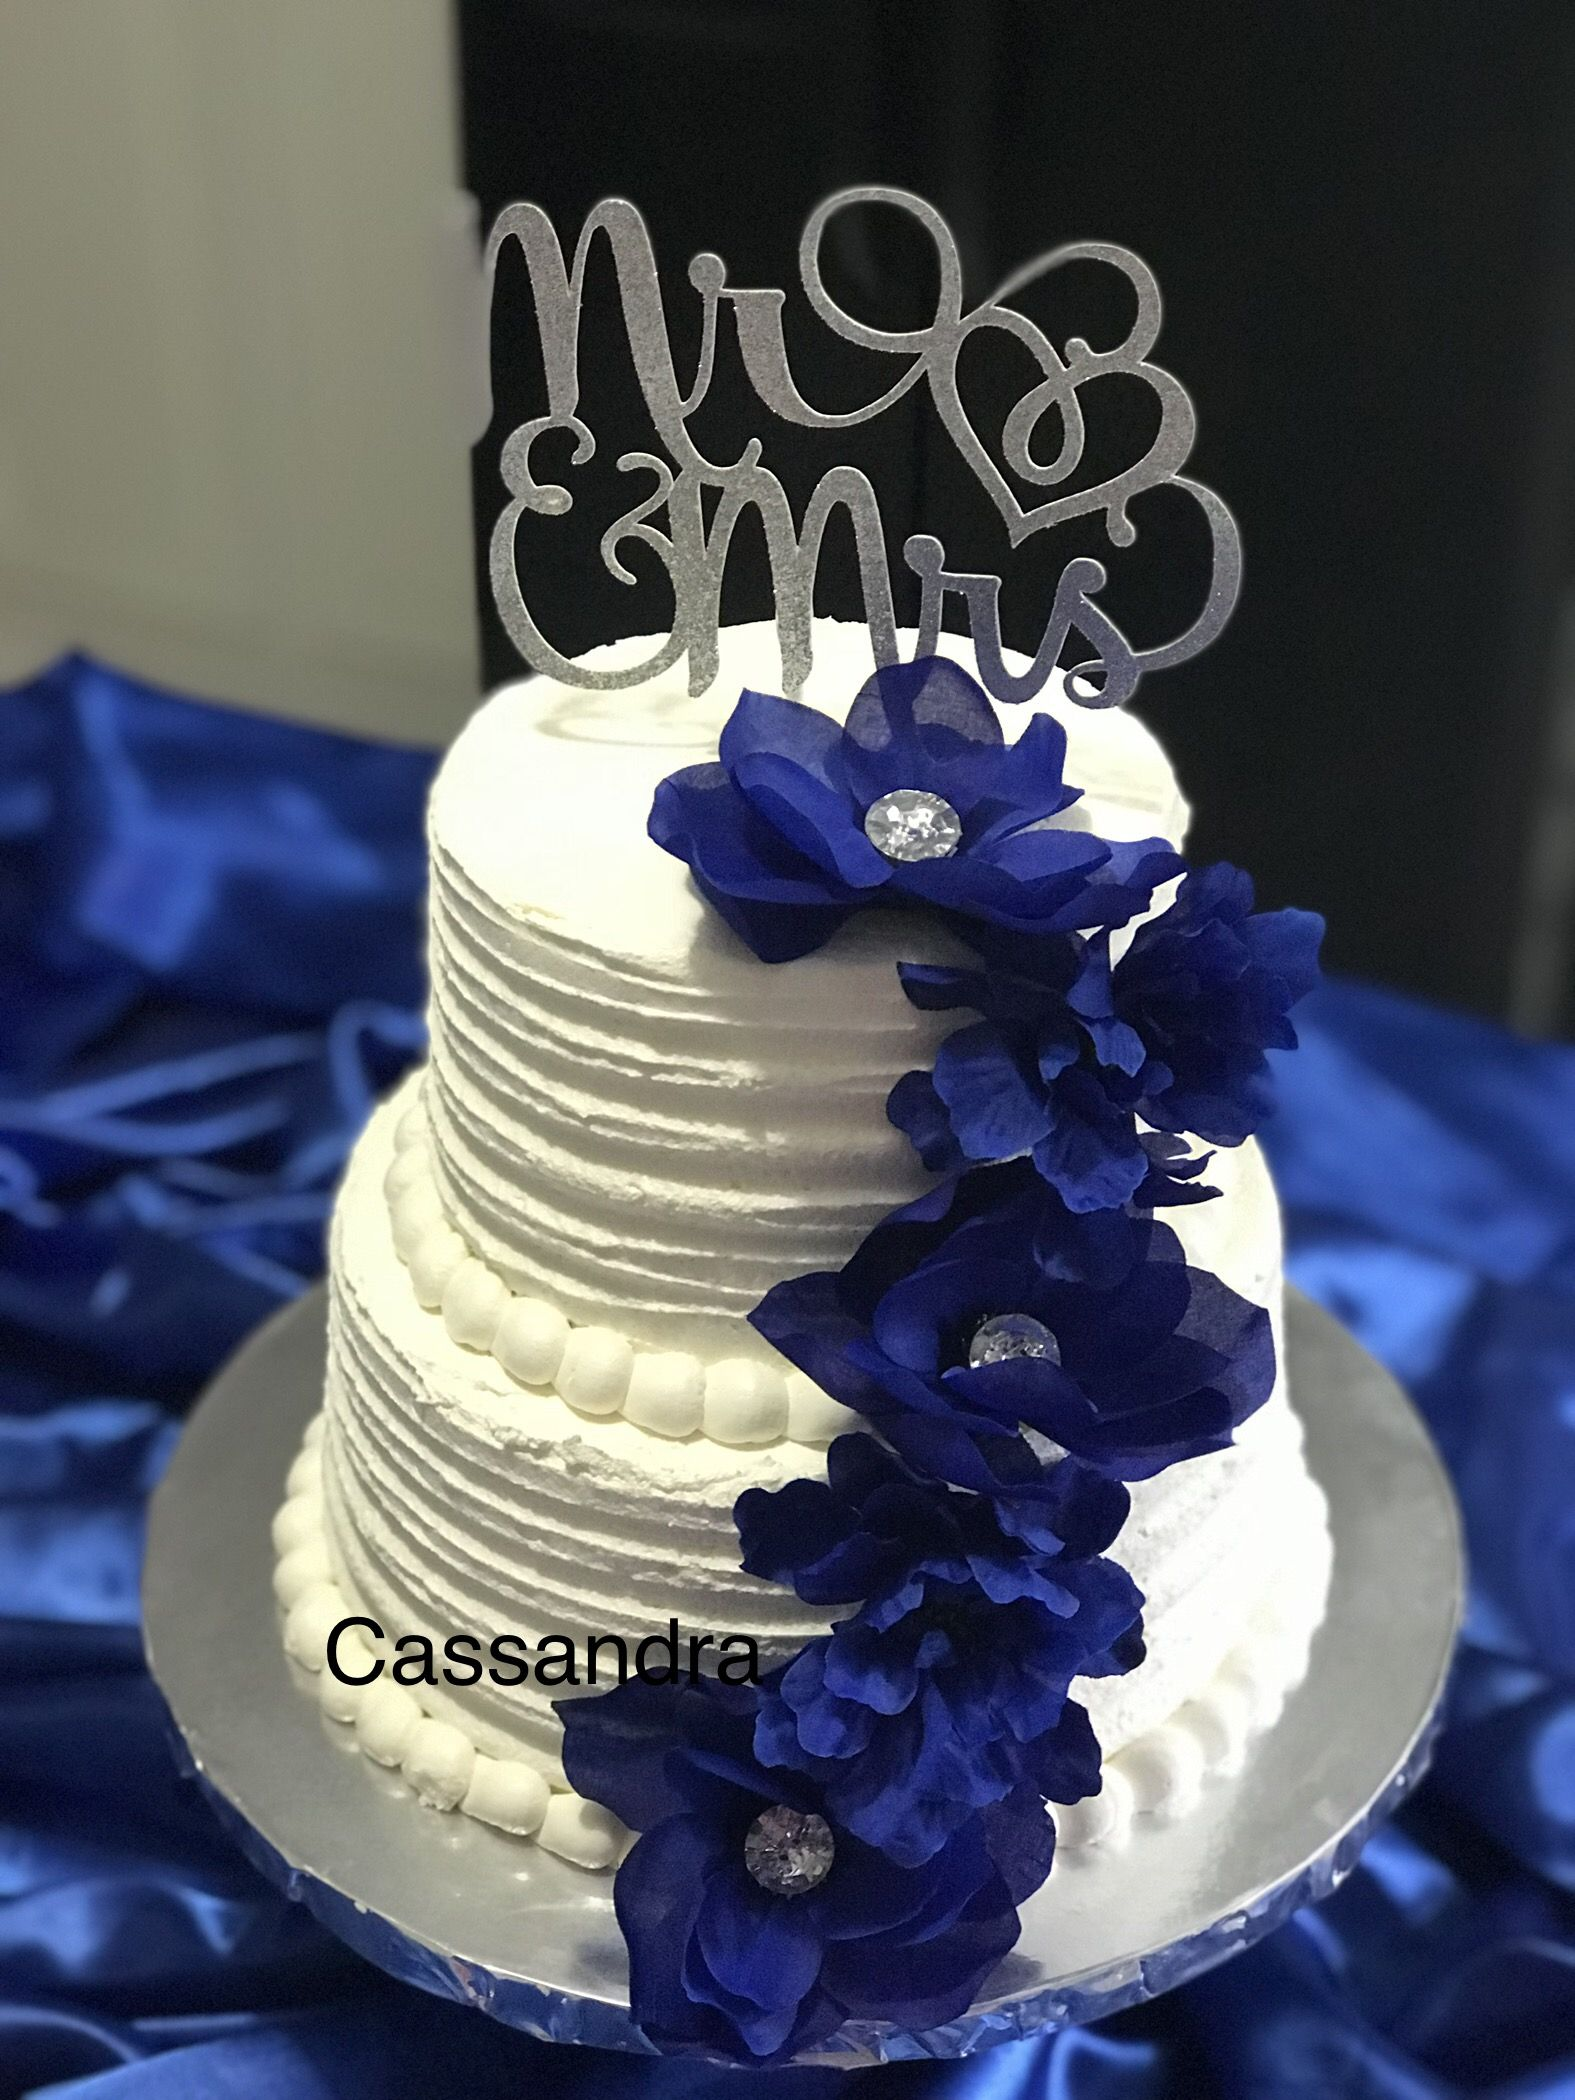 Small Two Tier Wedding Cake Royal Blue Theme Blue Themed Wedding Cake Royal Blue Wedding Cakes Tiered Wedding Cake